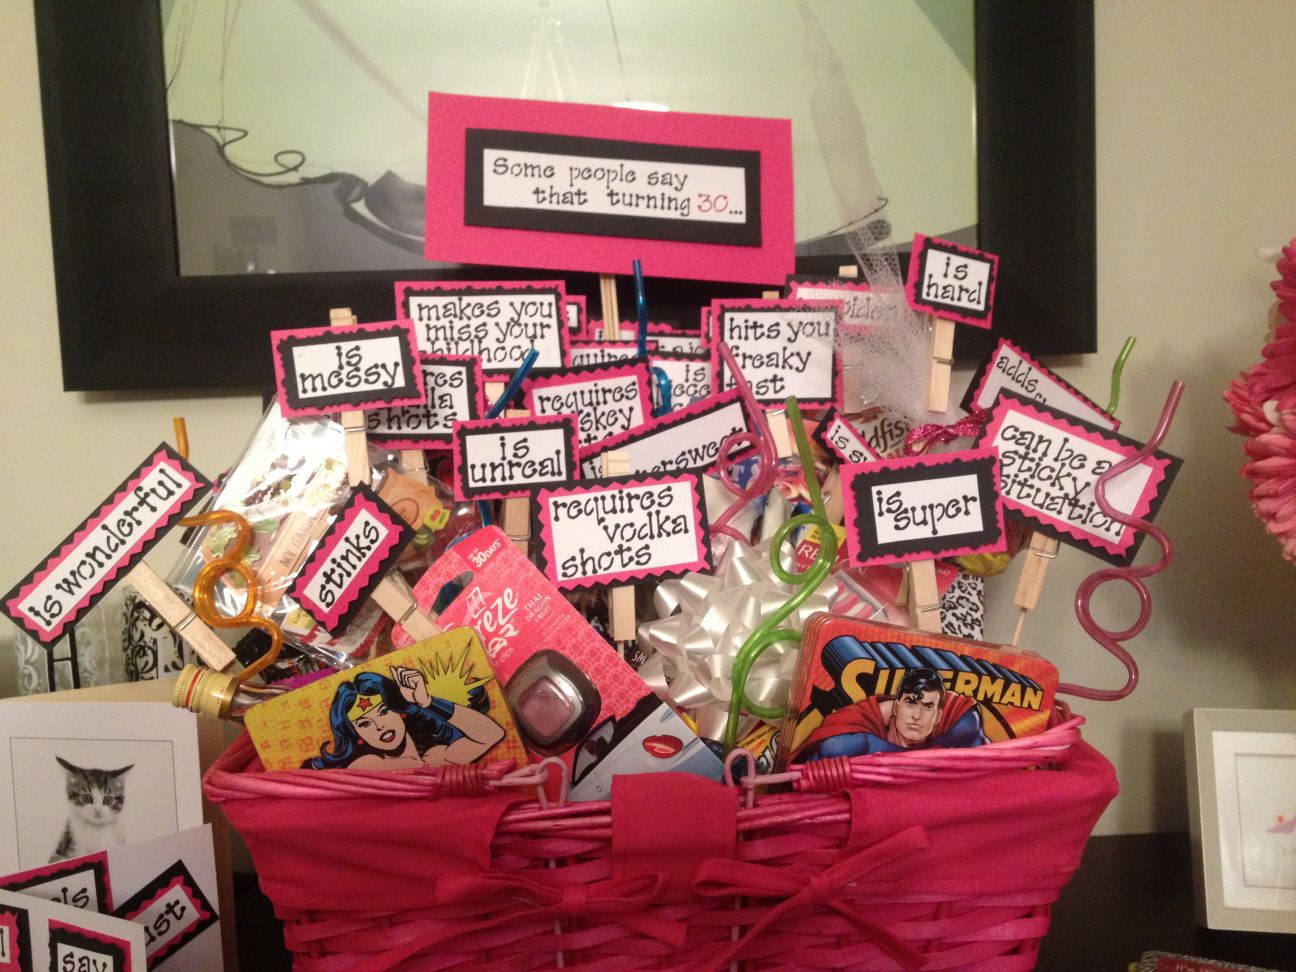 A Dear Friend Just Turned 30 And To Celebrate One Of Her Long Time Friends Came Up With This Super Cute Gift Basket Idea Some People Say That Turning